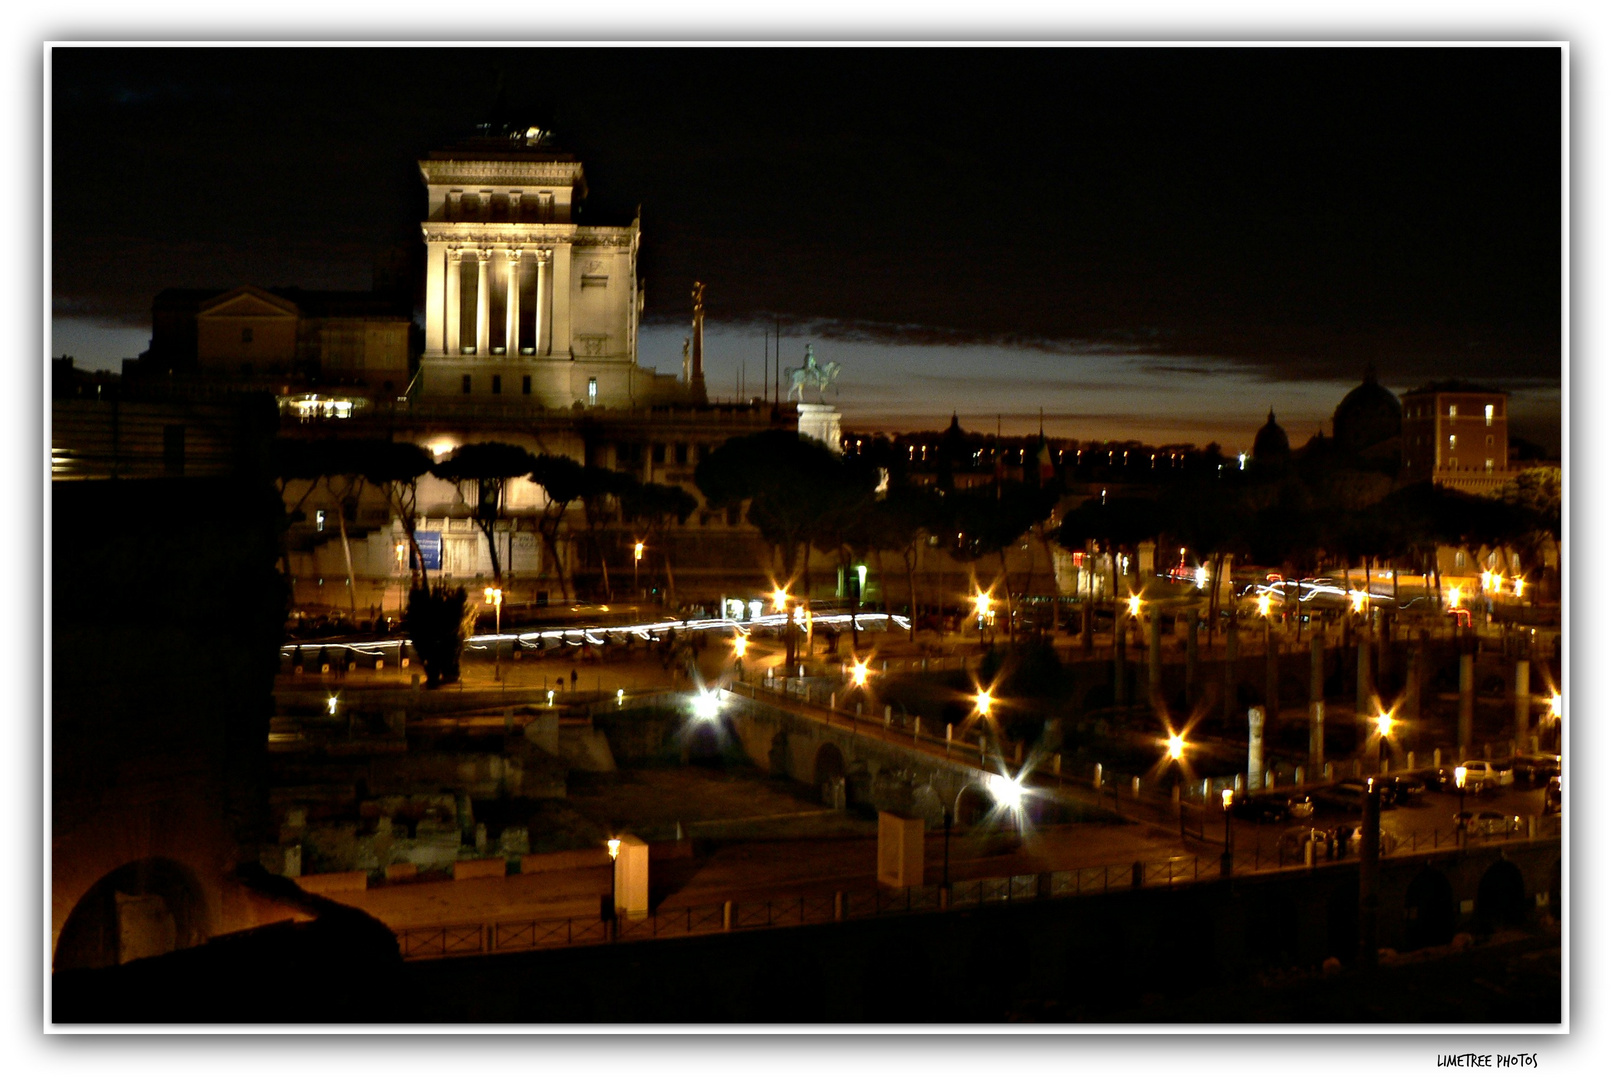 Night View from the Caesar Forum and Trajan Markets to the Vittoriano